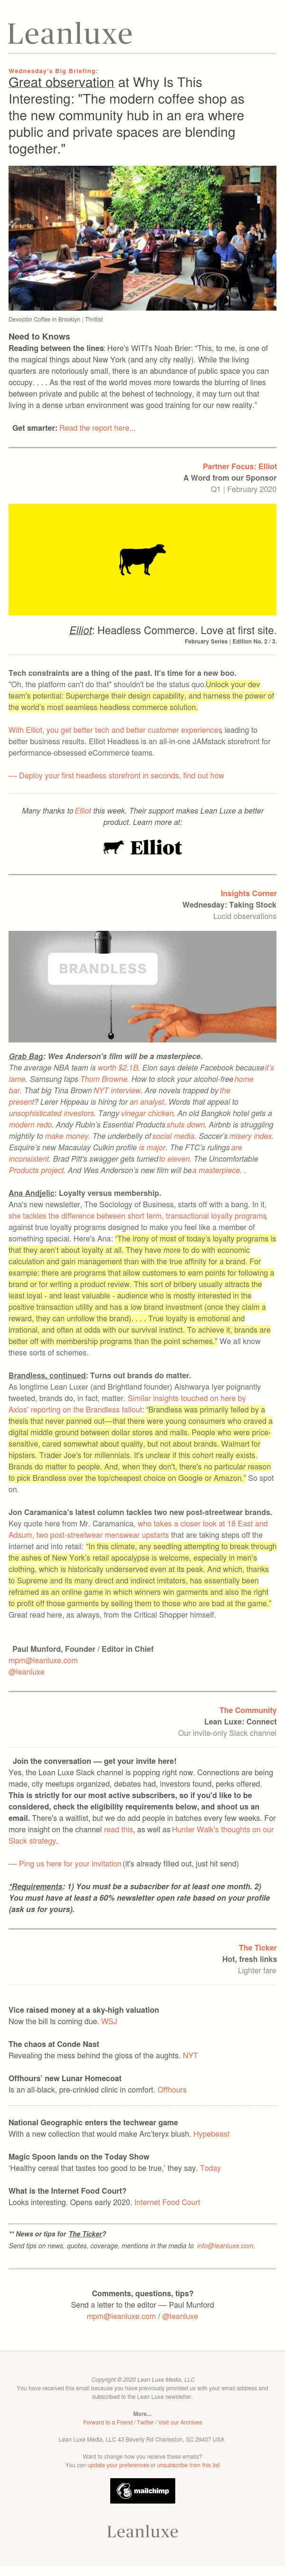 The Debrief No. 382: The modern coffee shop as the new public-private community hub — Brandless, cont'd: Turns out brands do still matter.